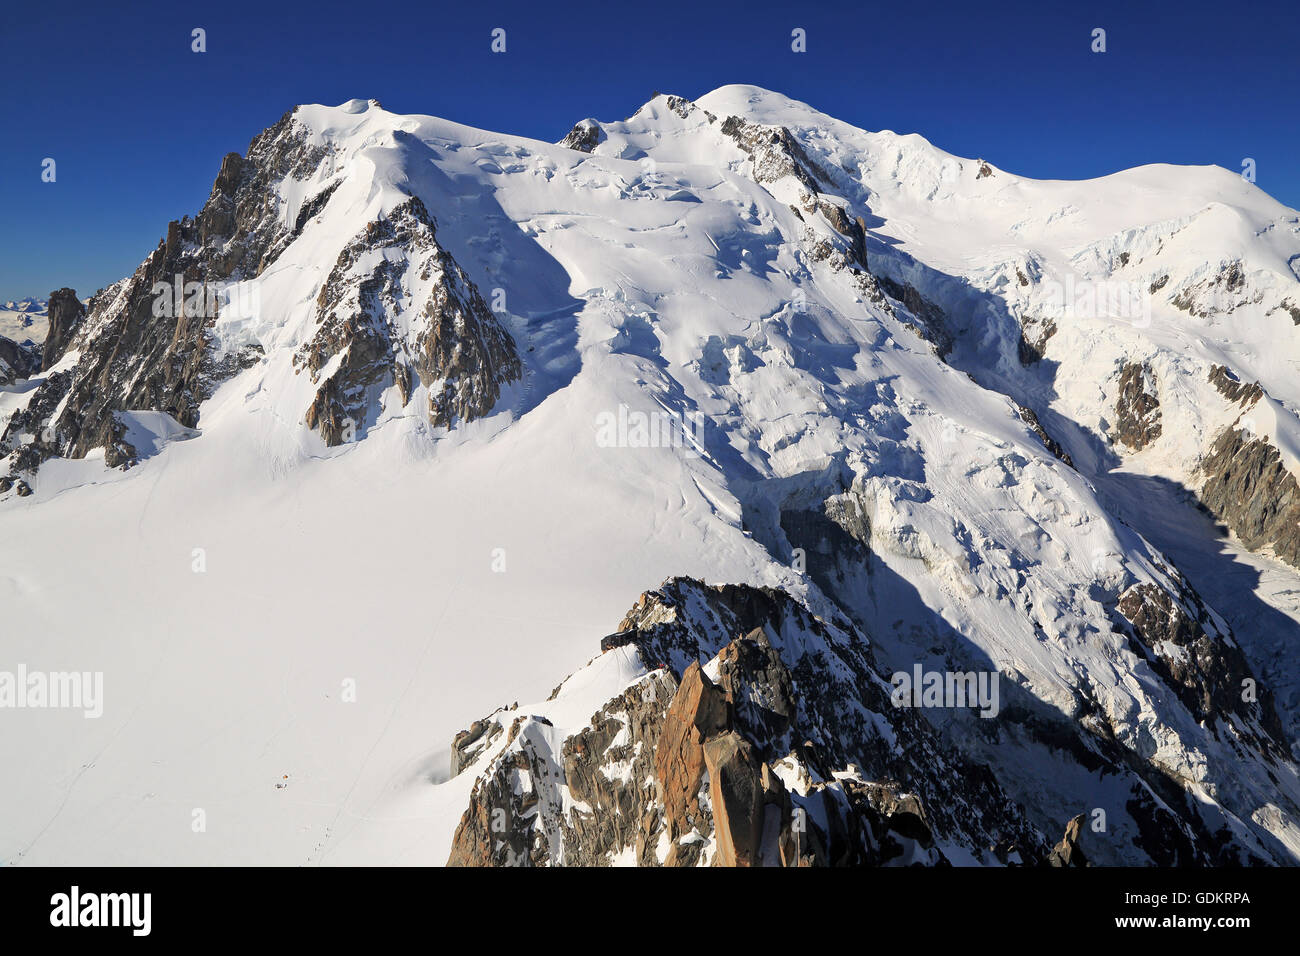 Mont Blanc viewed from Aiguille du Midi, France - Stock Image